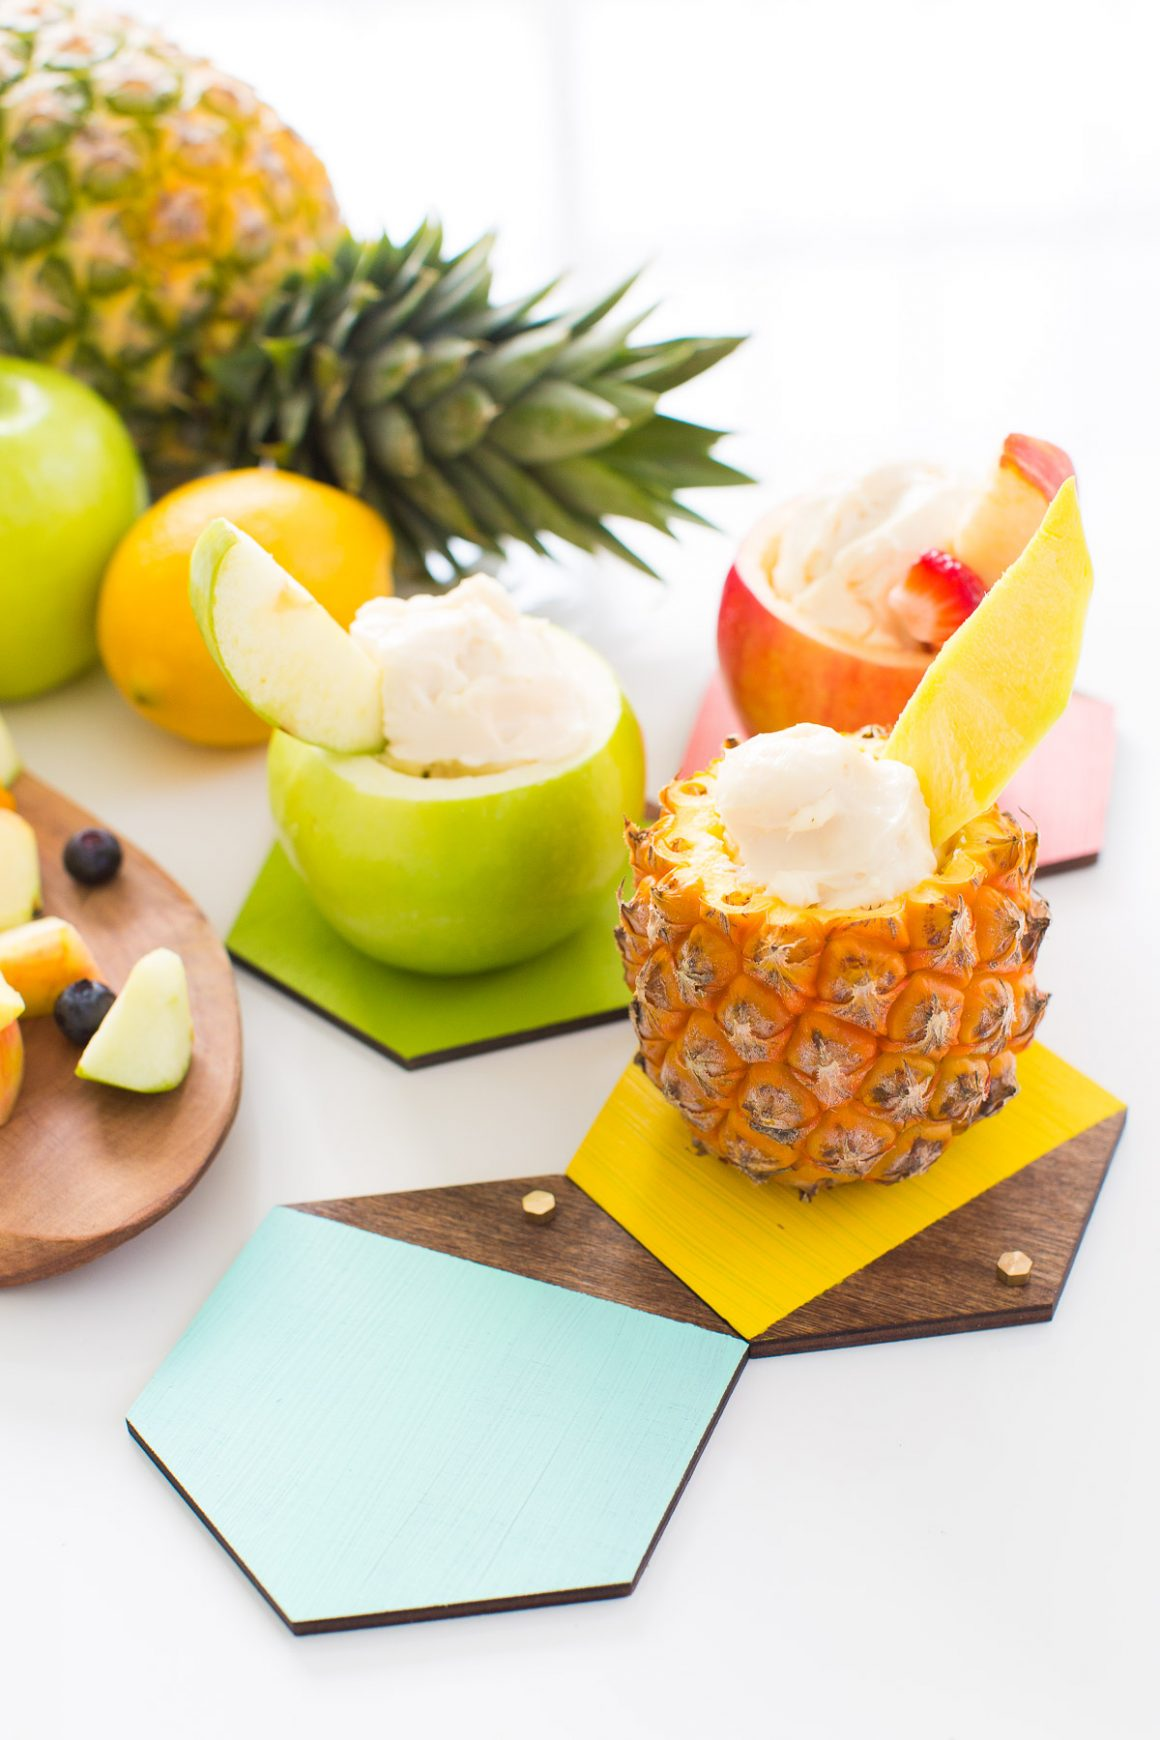 50 Easy Handmade Gift Ideas You'll Love: Color Blocked Hexagon Mini Serving Boards from Sugar and Cloth